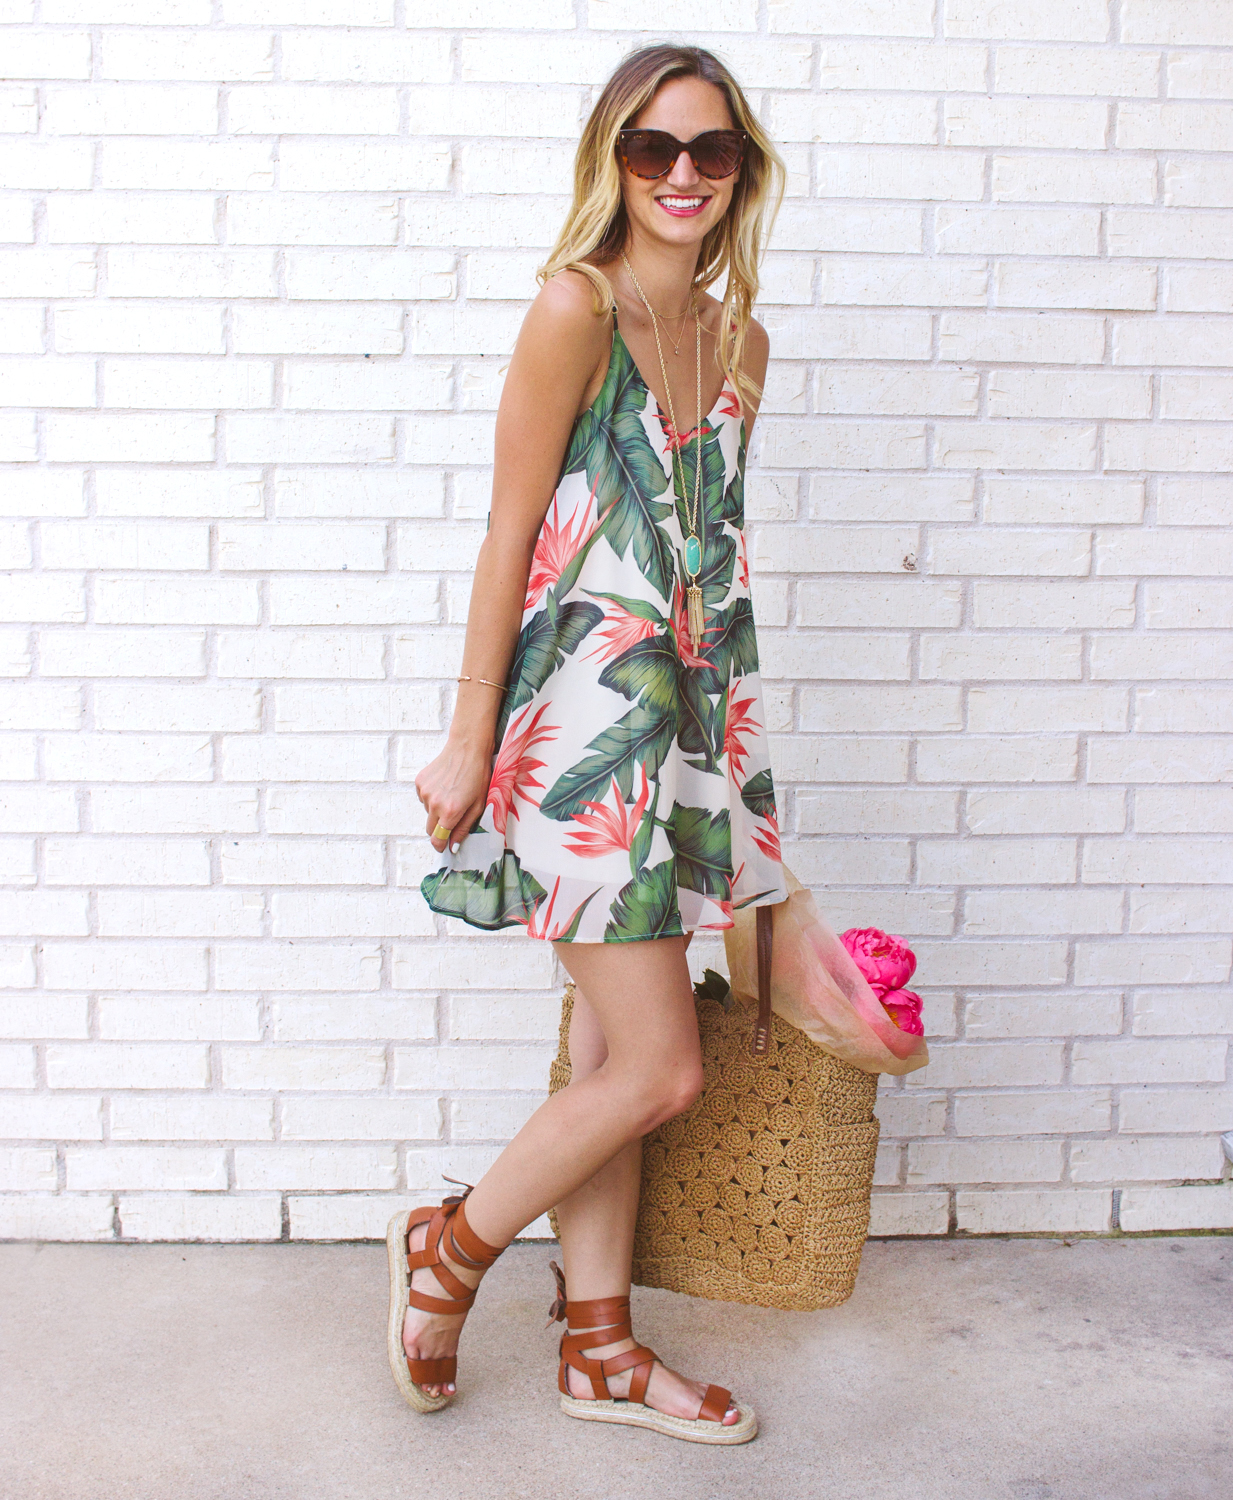 livvyland-blog-austin-texas-fashion-blogger-show-me-your-mumu-palm-print-circus-mini-dress-summer-outfit-colorful-5